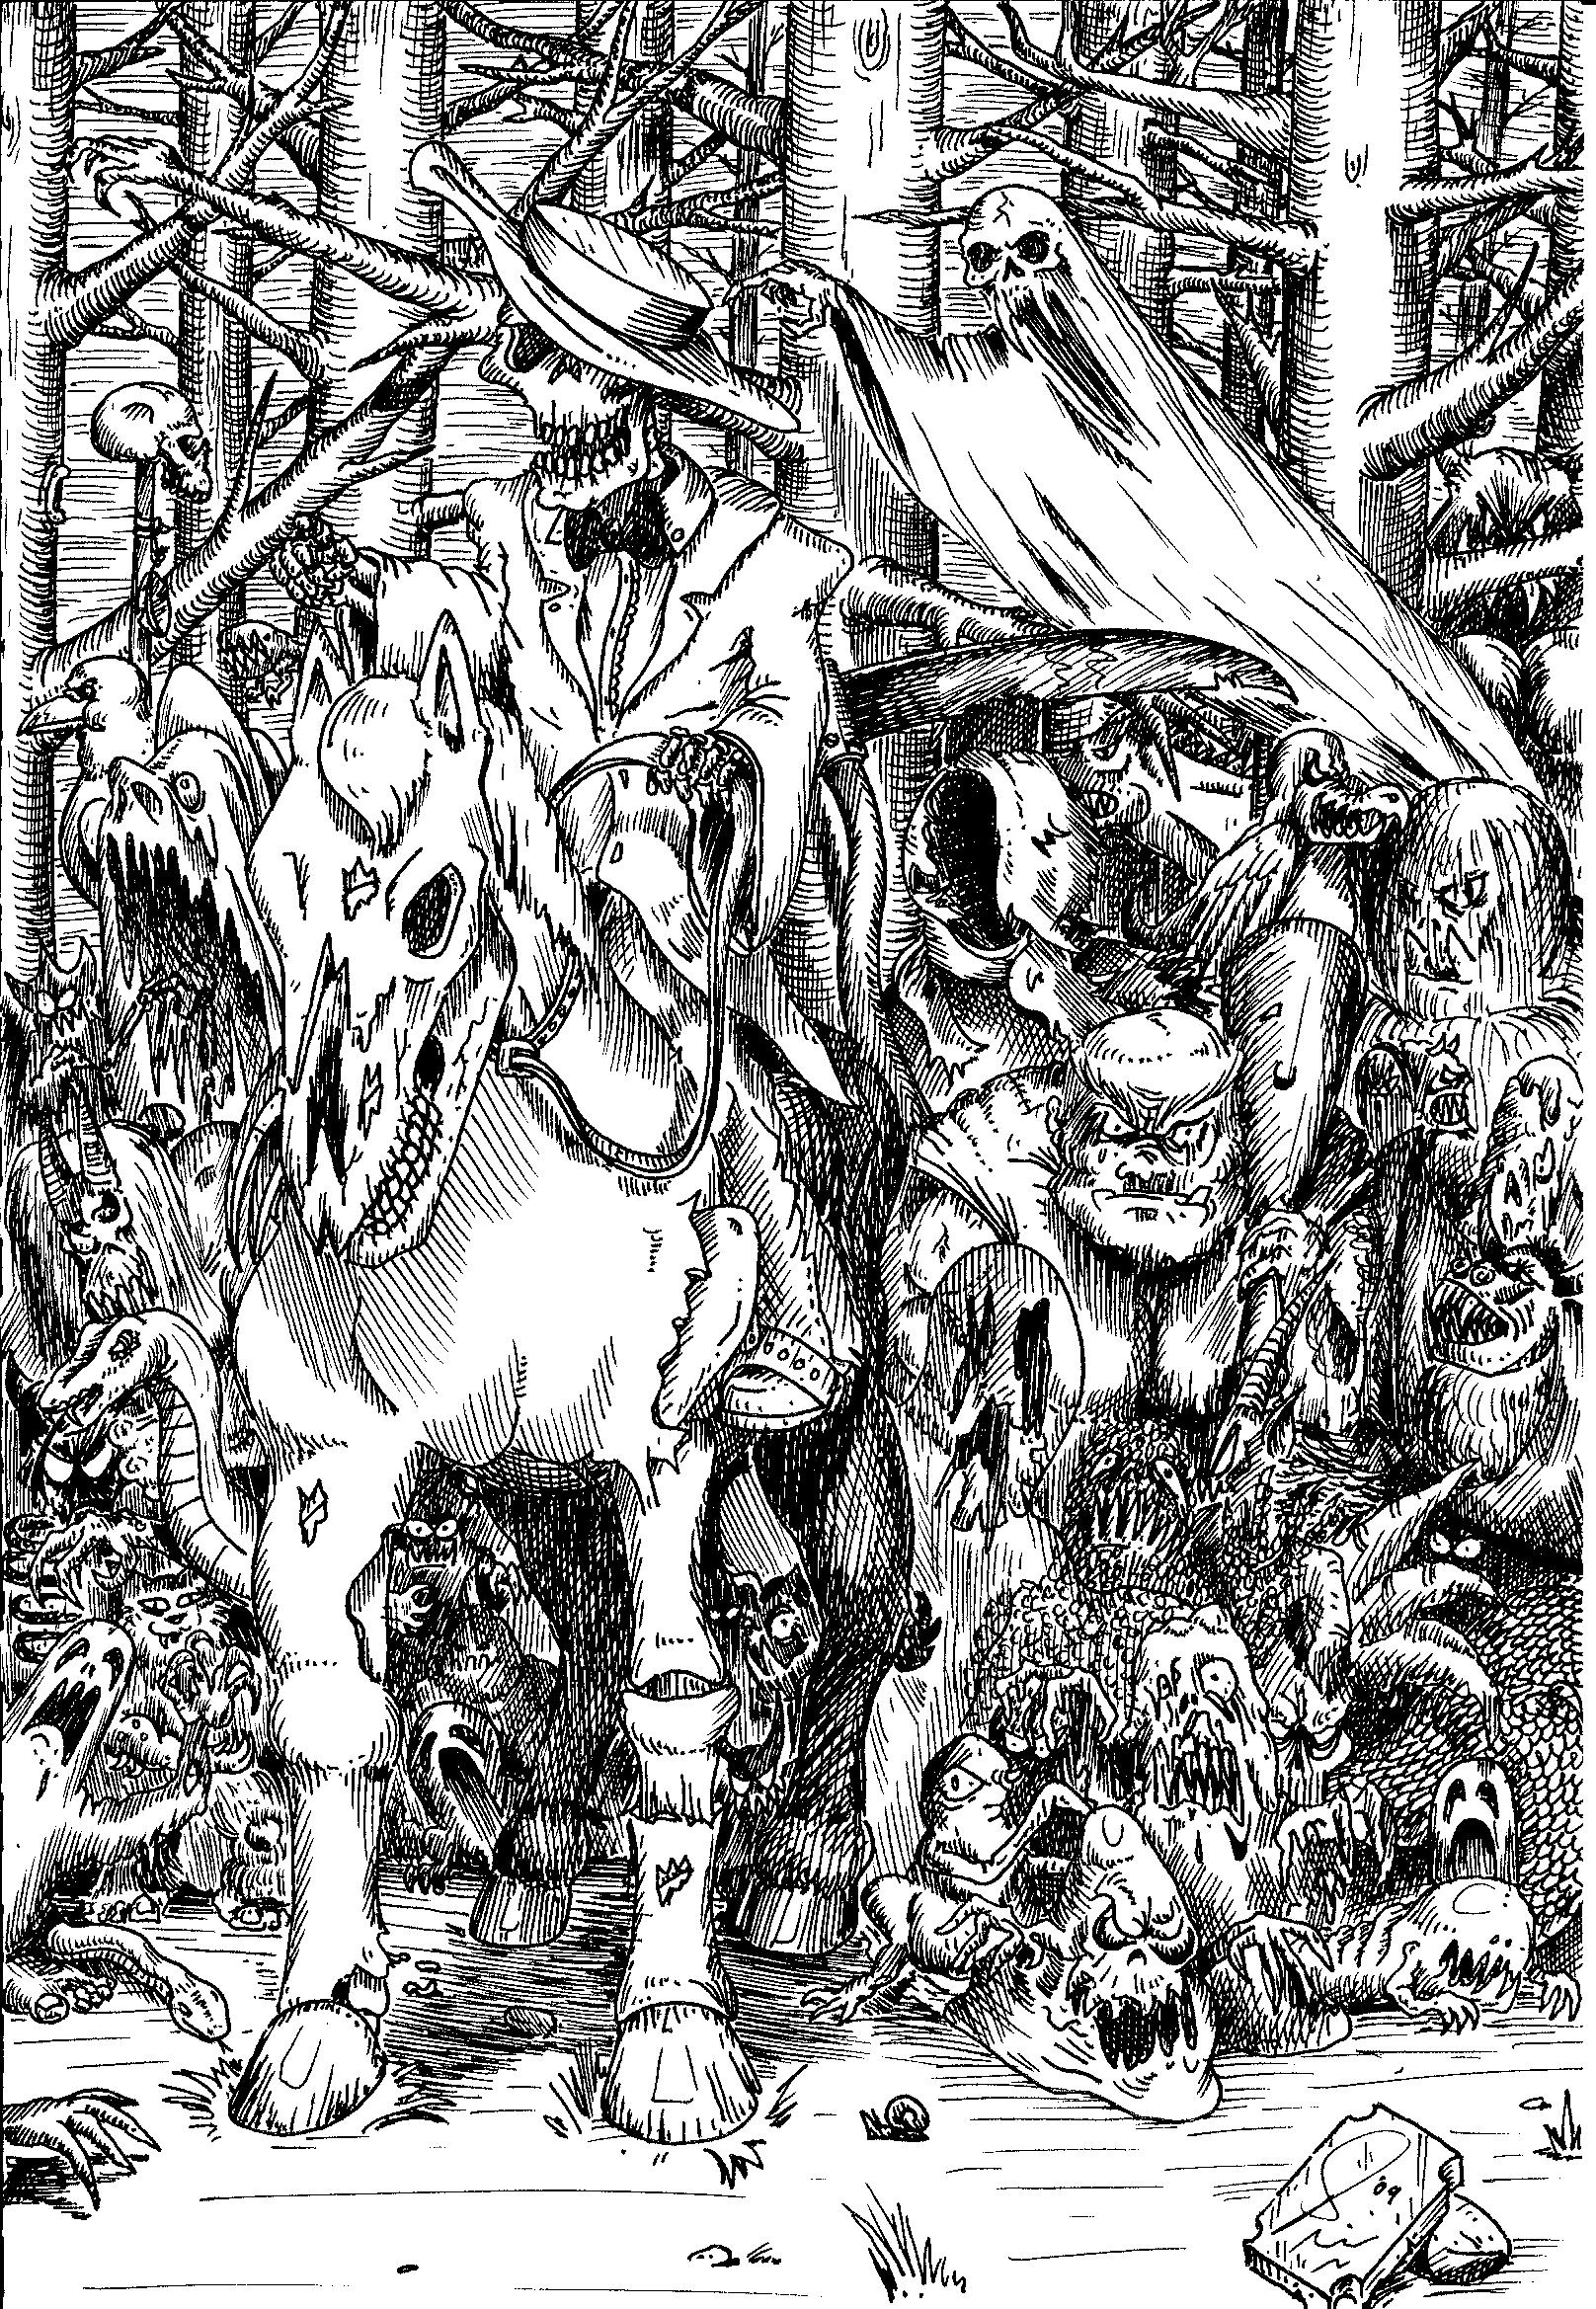 Albrecht Dürer, Artwork, Chaos, Conversion, Daemons, Drawing, Drawings, Old, School, Space Marines, Style